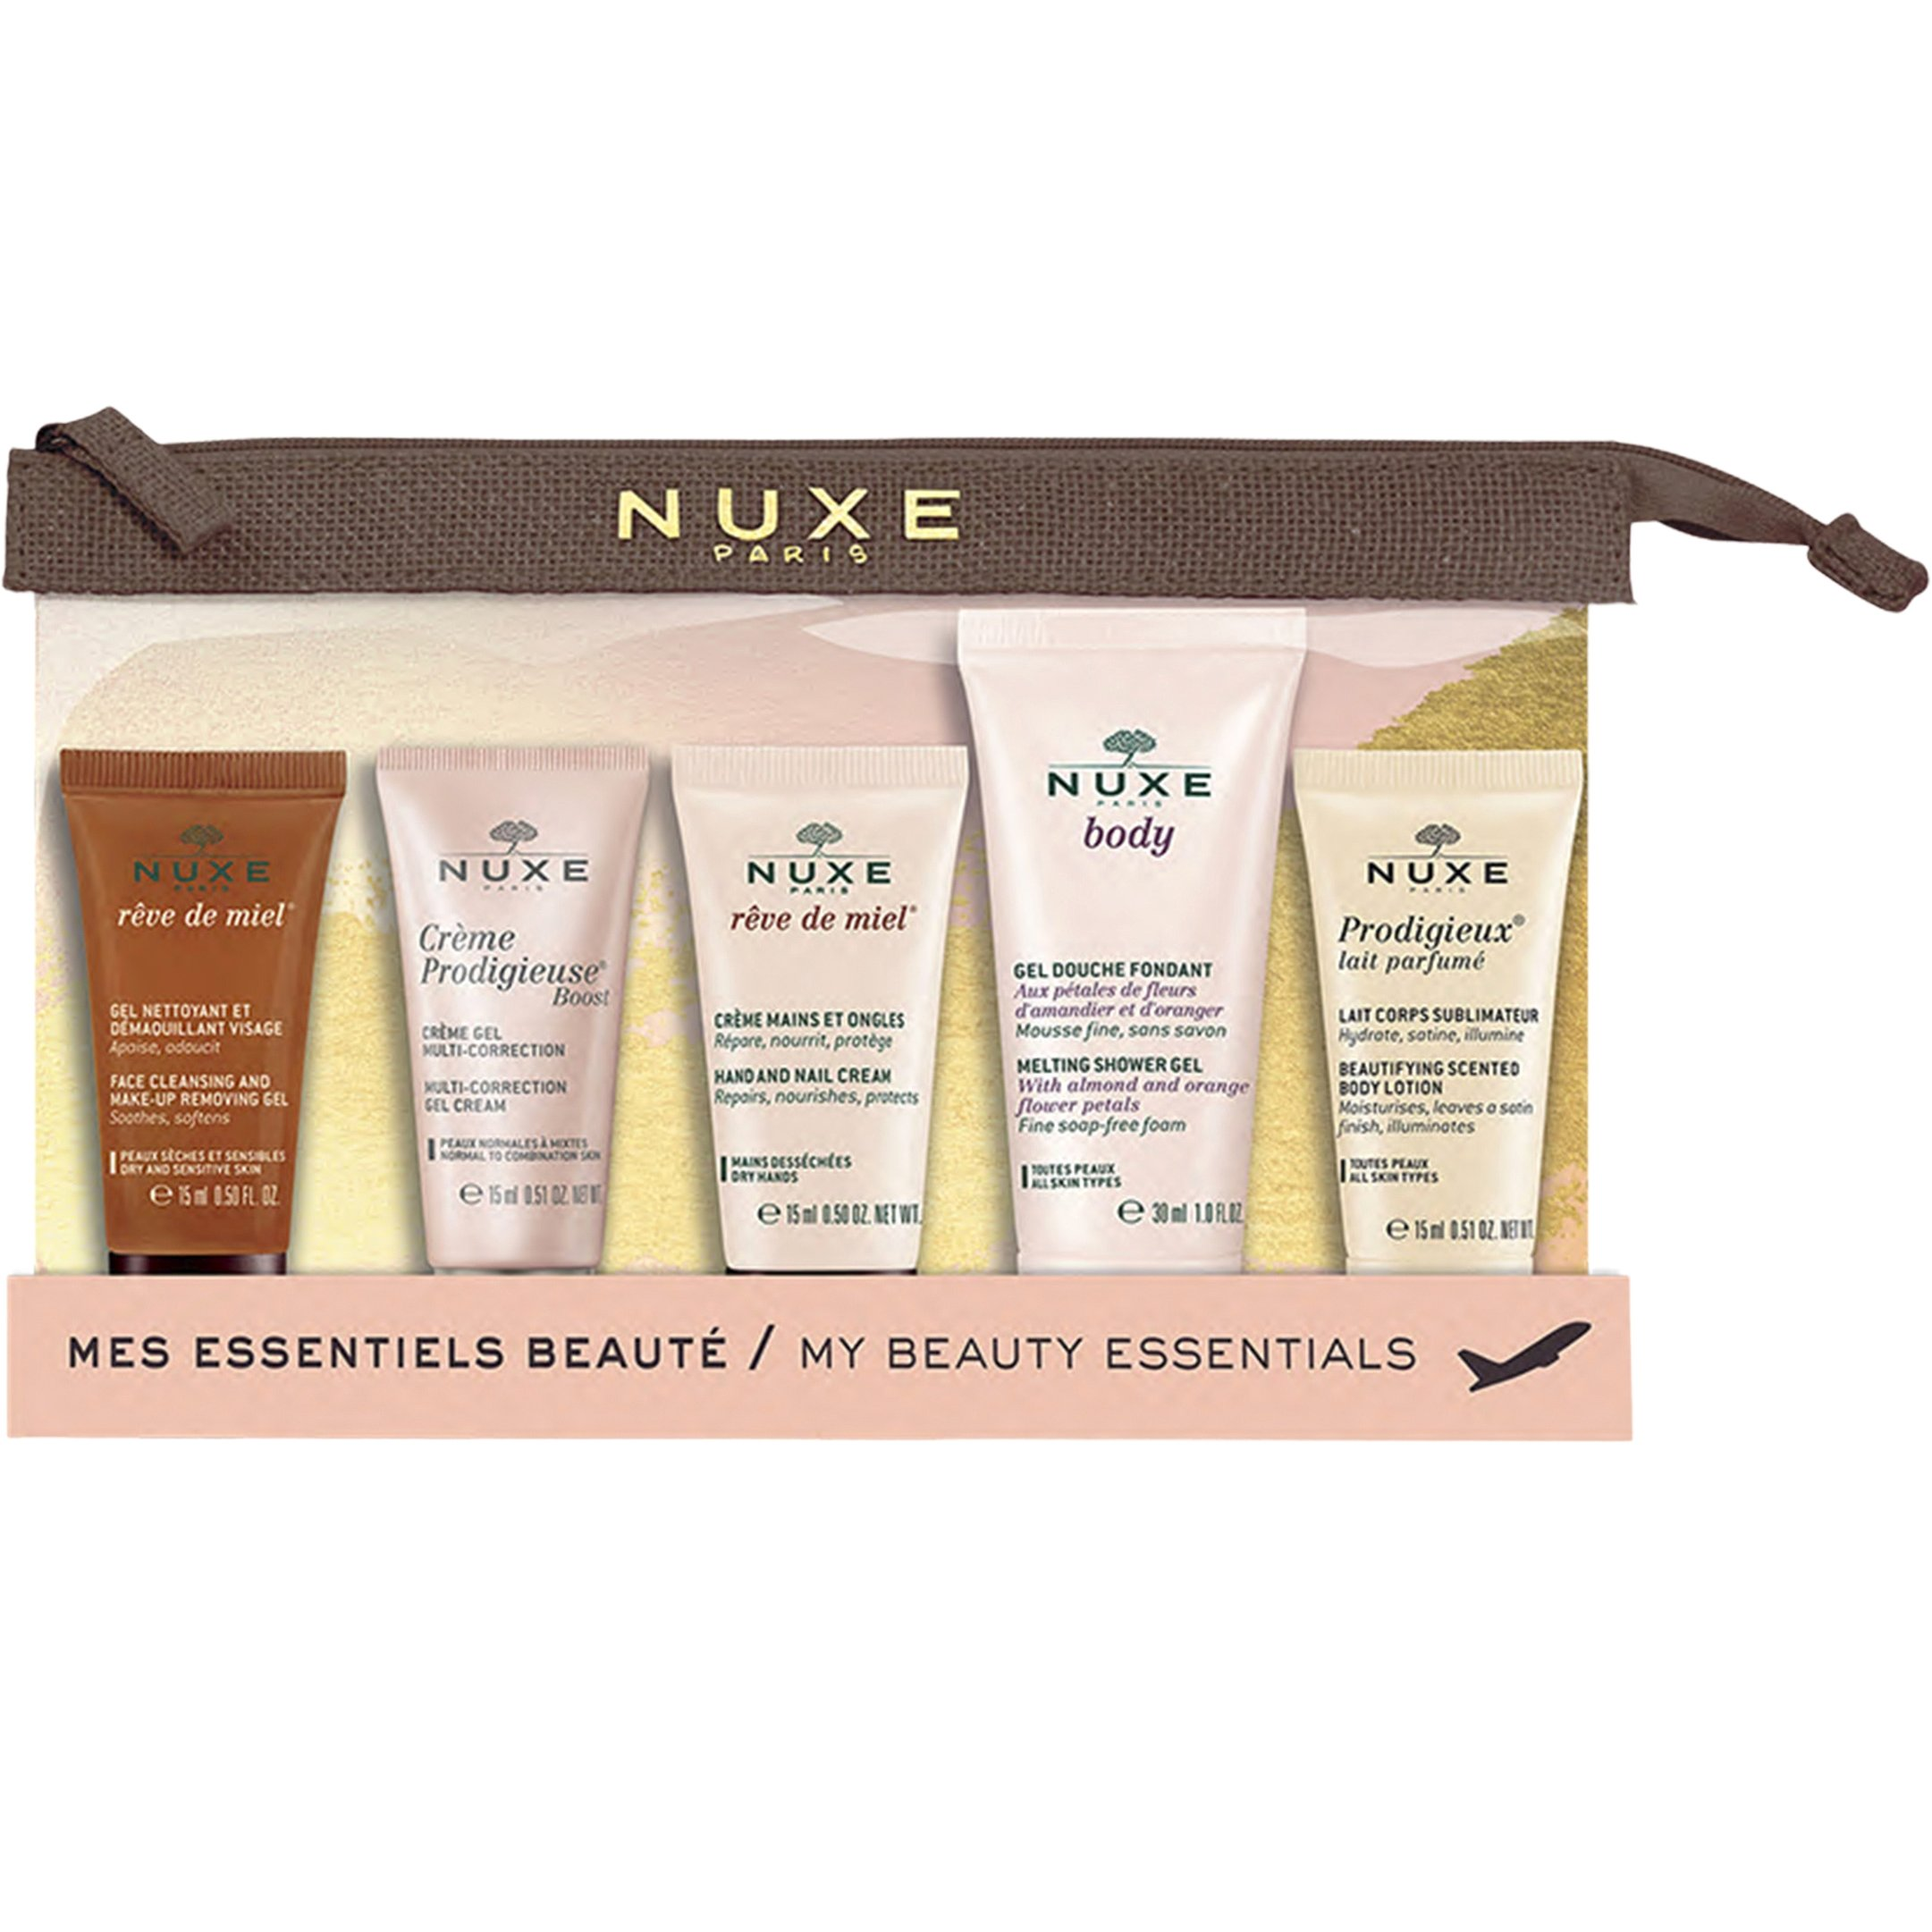 Nuxe My Beauty Essentials Travel Kit Σετ Ταξιδίου Με Αδιάβροχο Νεσεσέρ & 5 Travel Sizes Προϊόντα​​​​​​​